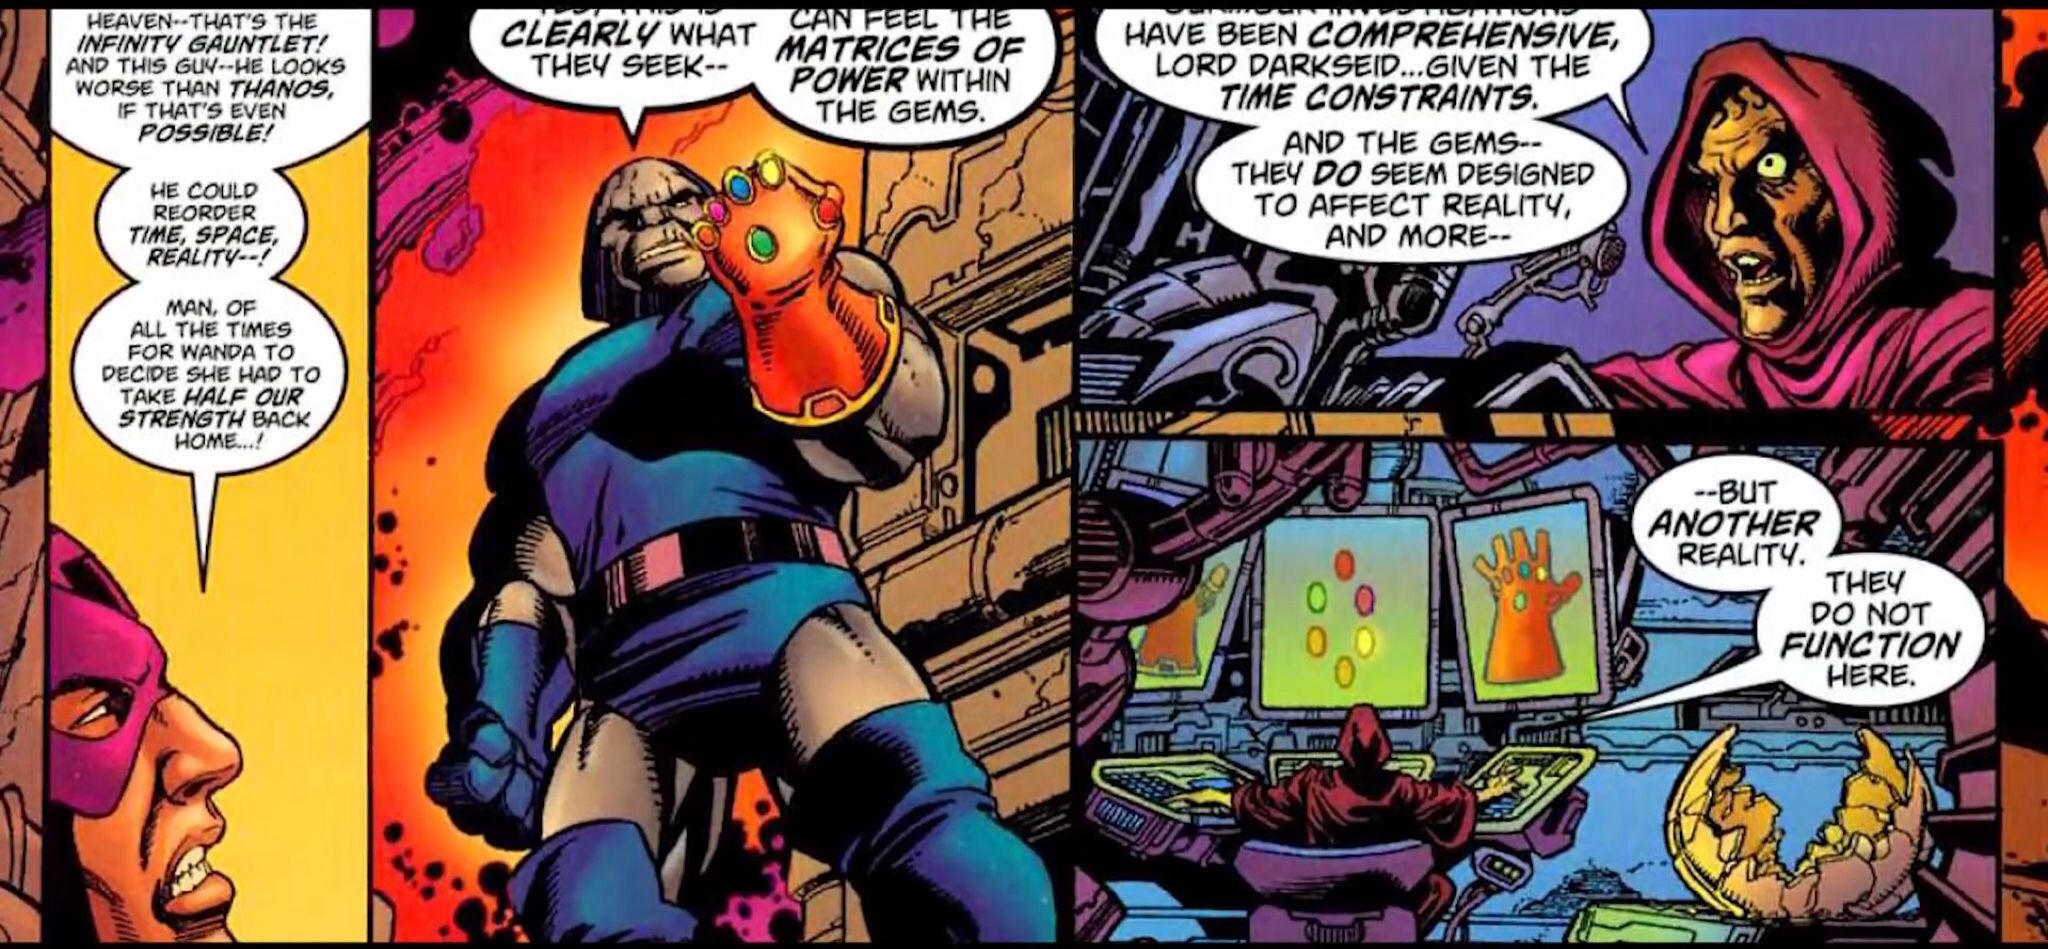 Apocalypse, Darkseid, and Thanos: A Guide to Big Blue ... |Darkseid Infinity Gauntlet